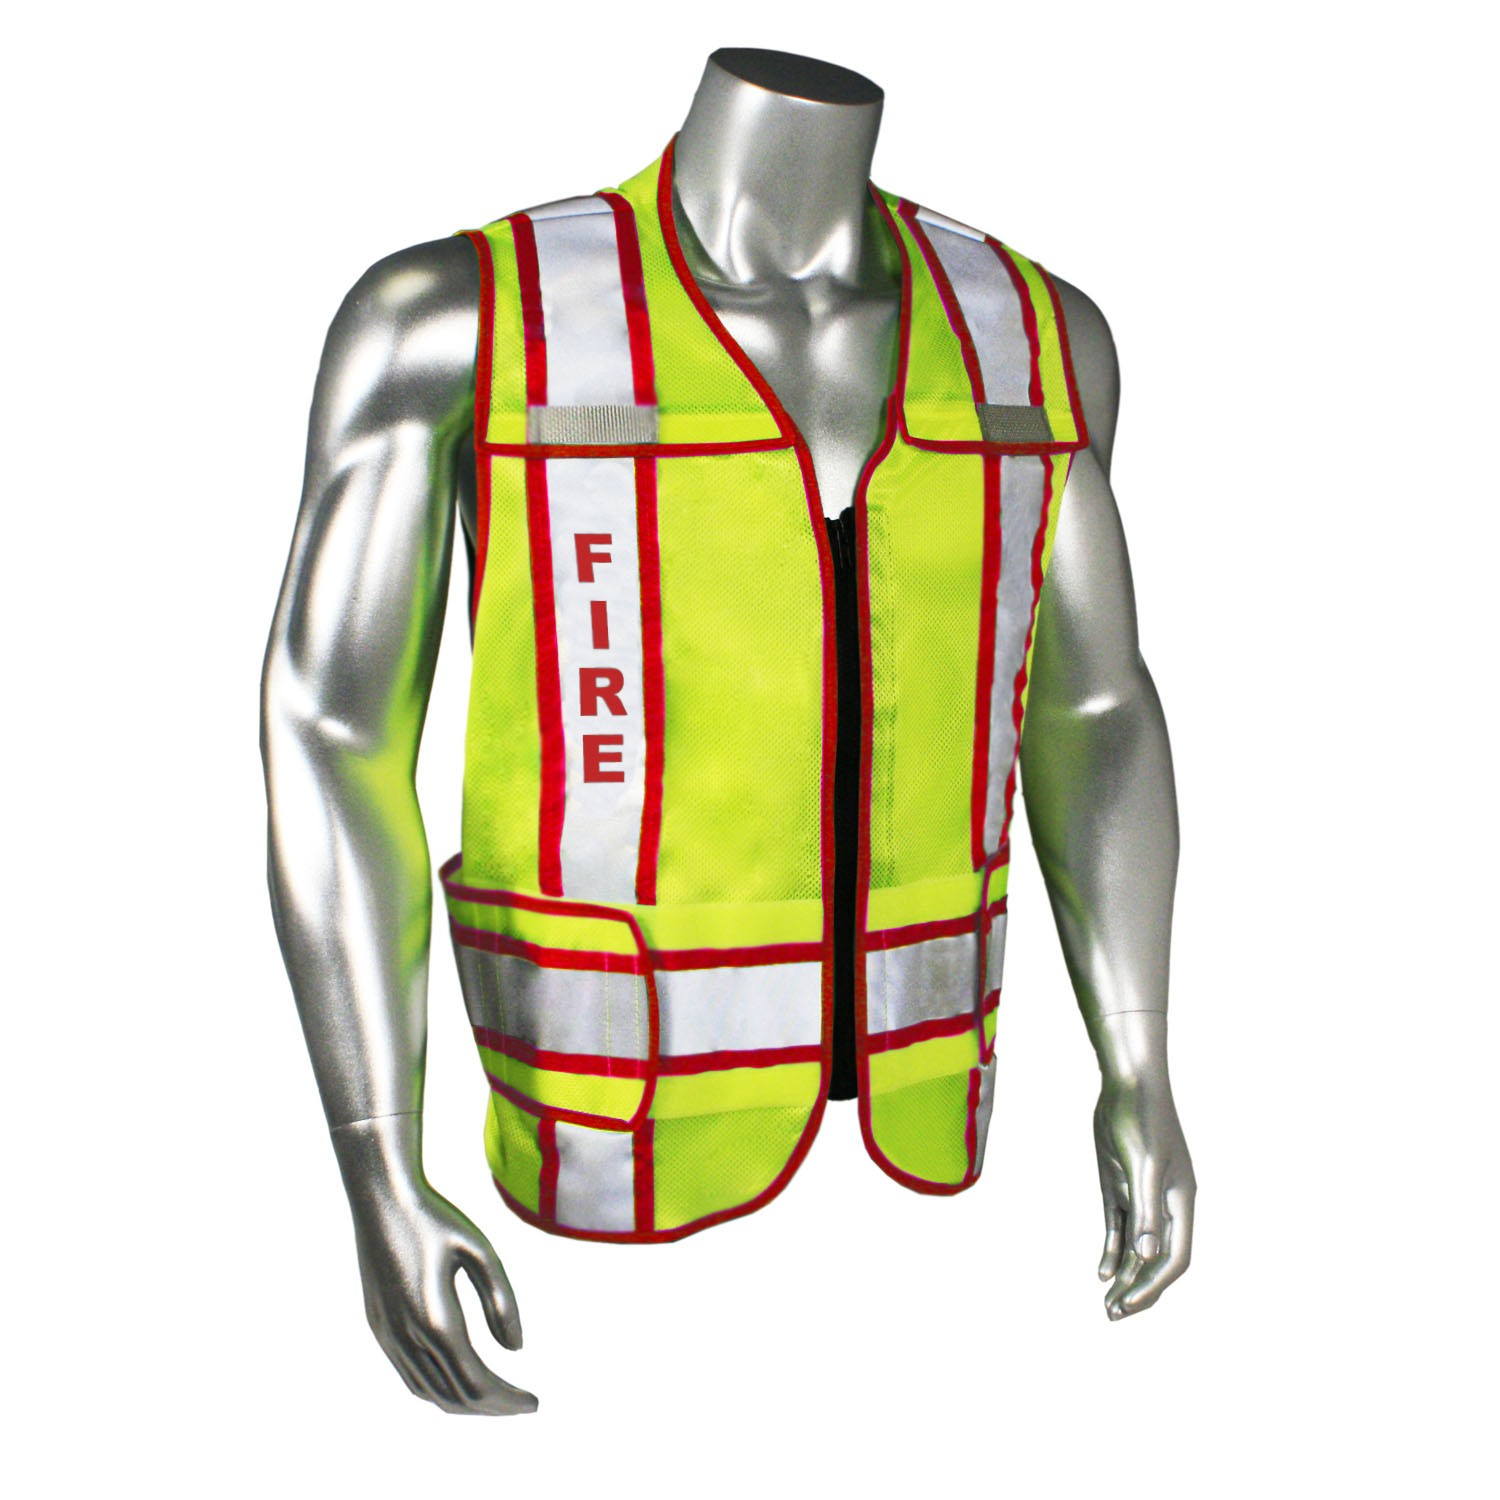 Breakaway Contrast Fire Safety Vest, Red Trim (#LHV-207-3G-FIR)